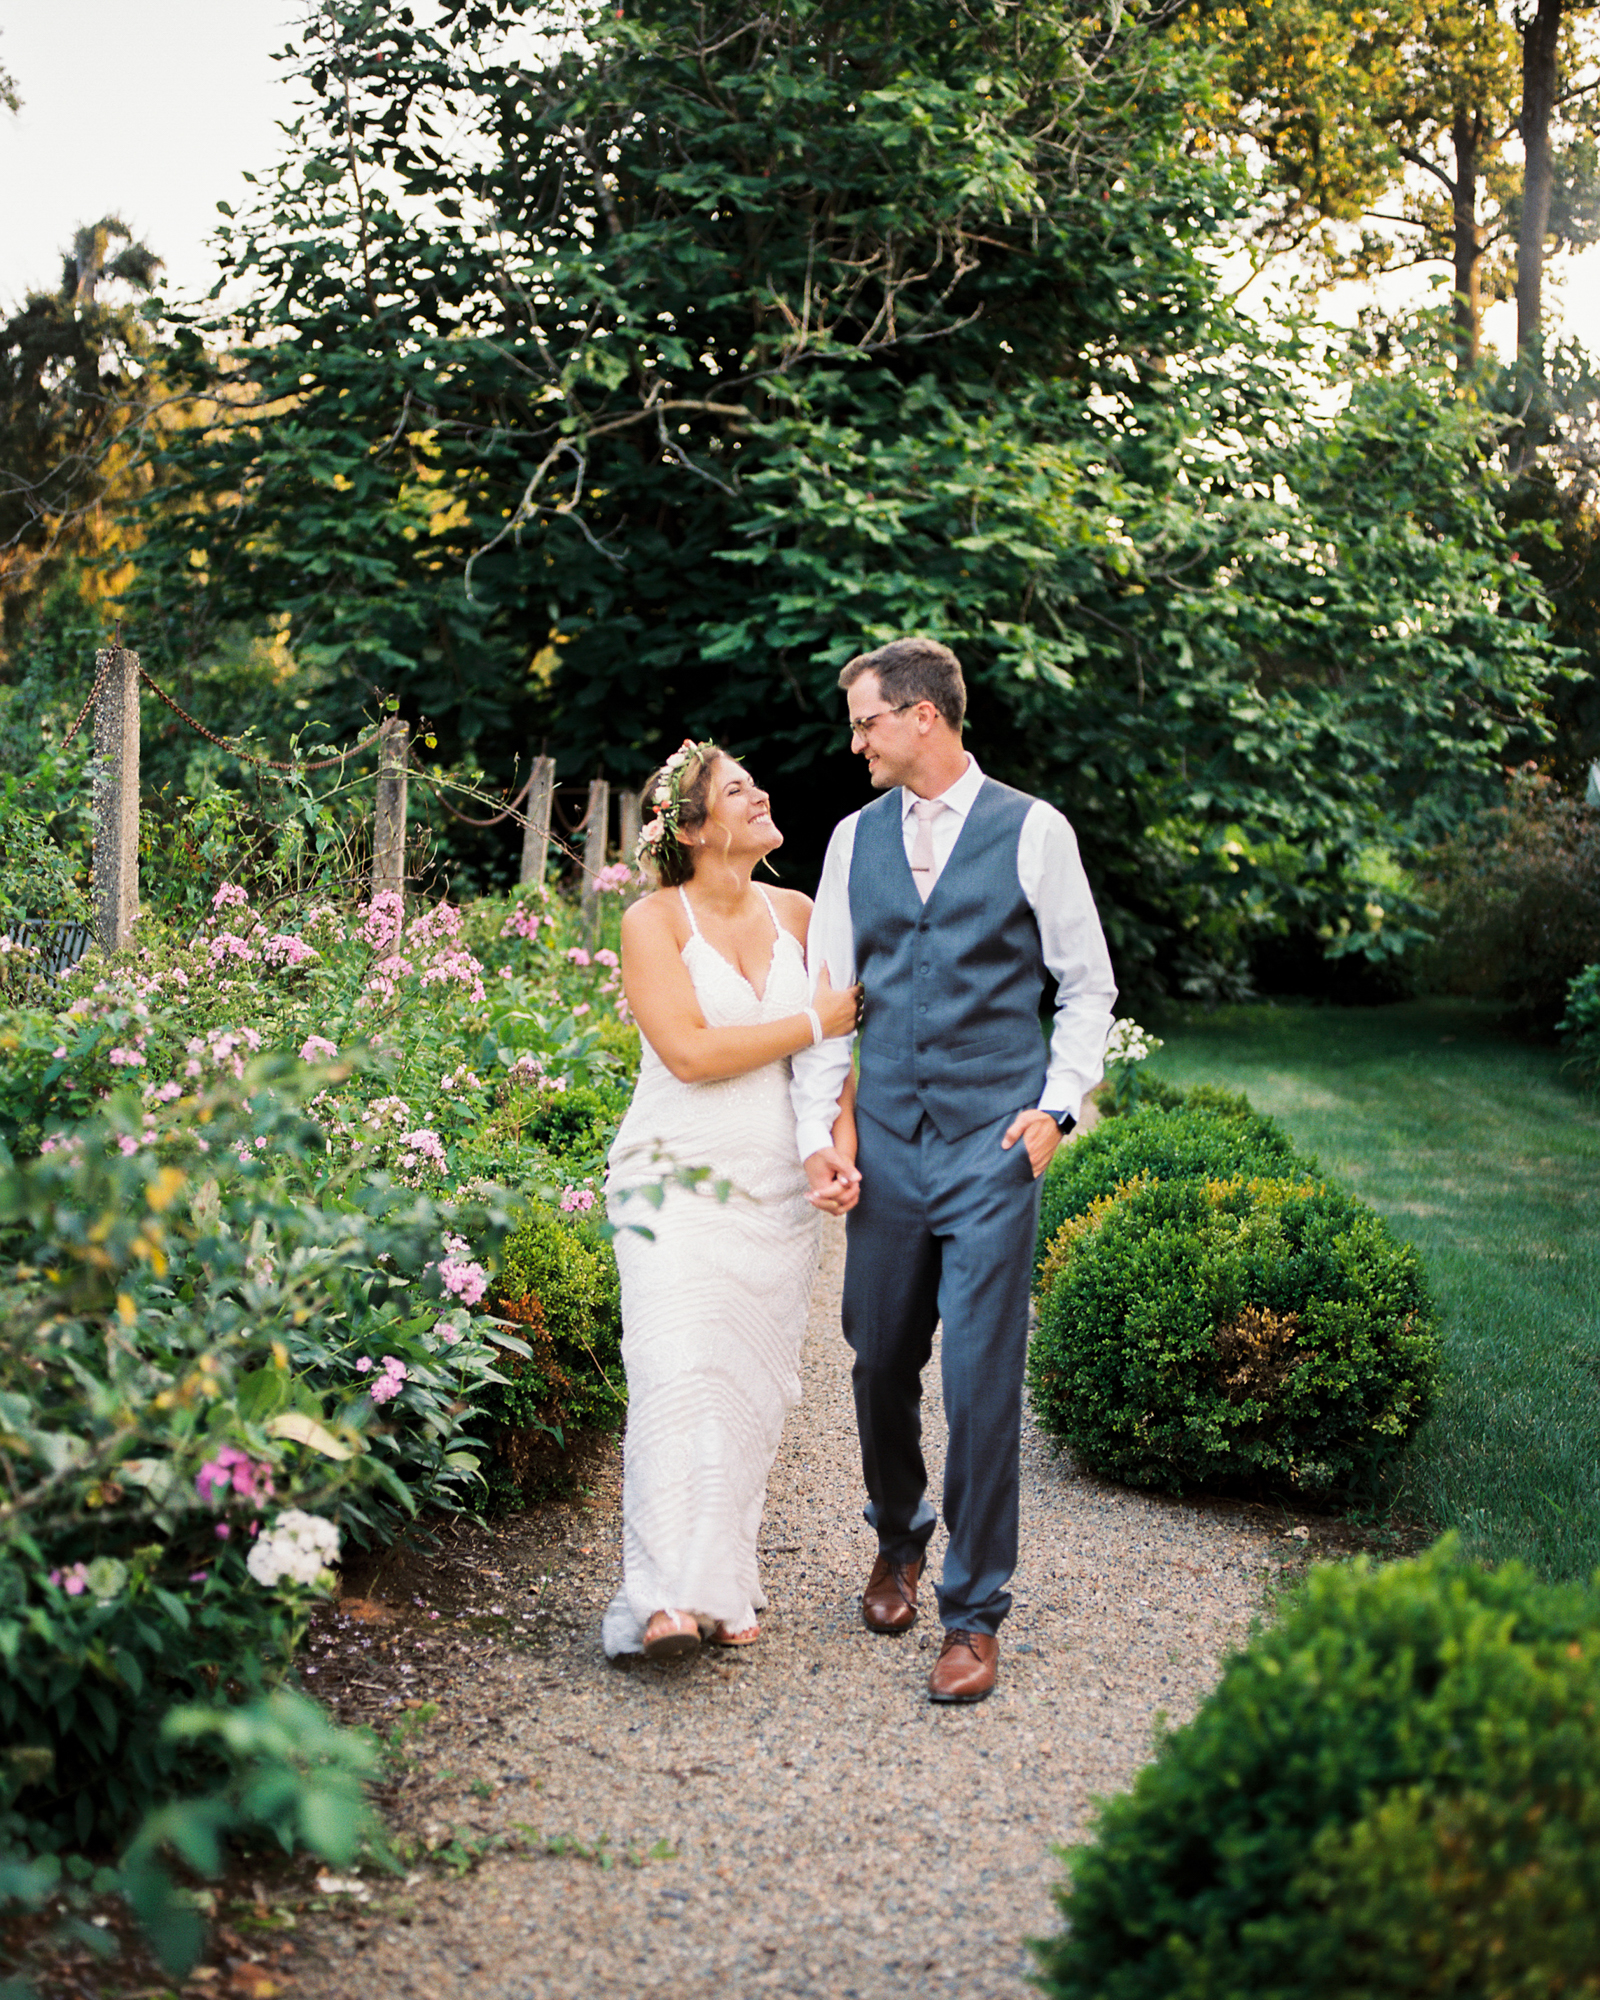 film-wedding-family-photographer-charlotte-carriage-house-rockwood-park-wilmington-delaware-43.jpg